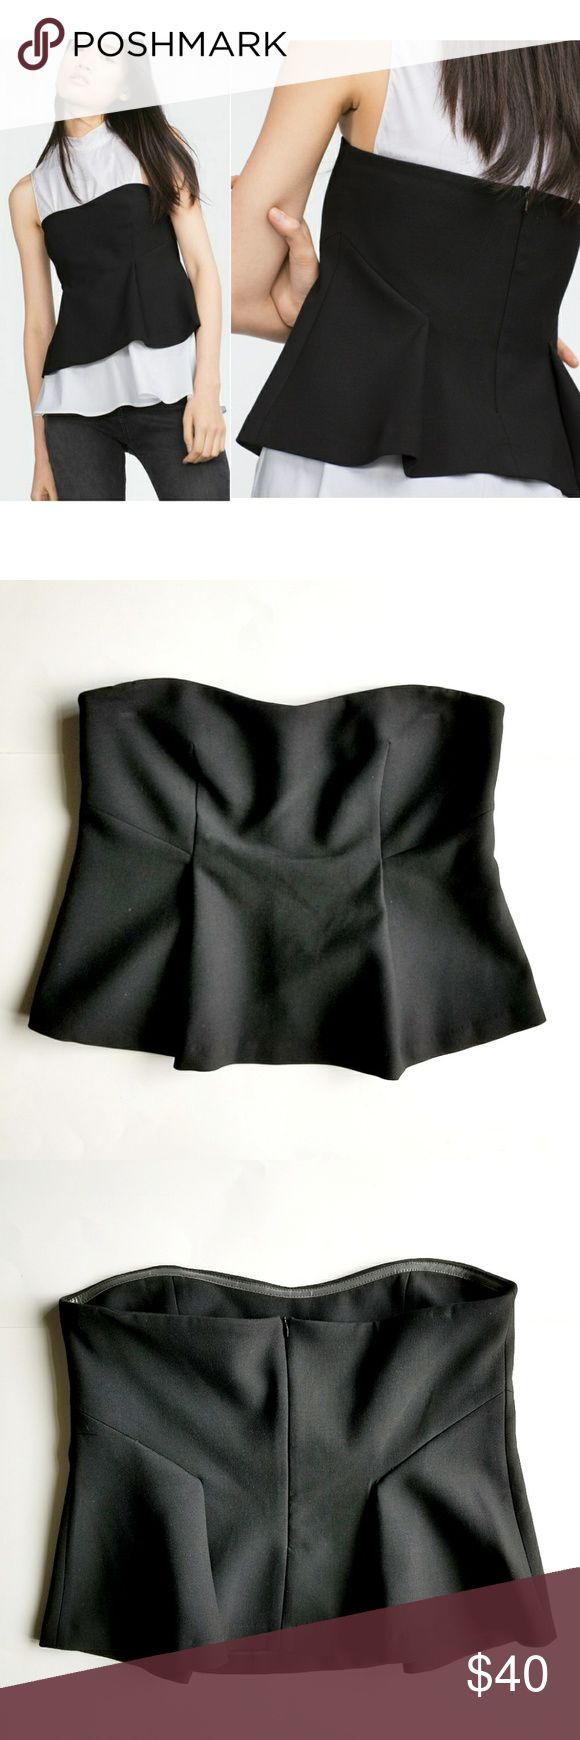 Zara Peplum Bustier Top Slik black bustier top, to wear by itself or on top of a shirt as in picture. Unlined, side zipper closure, silicone strip for better grip. Easy to dress up or down for any occasion. Zara Tops Blouses